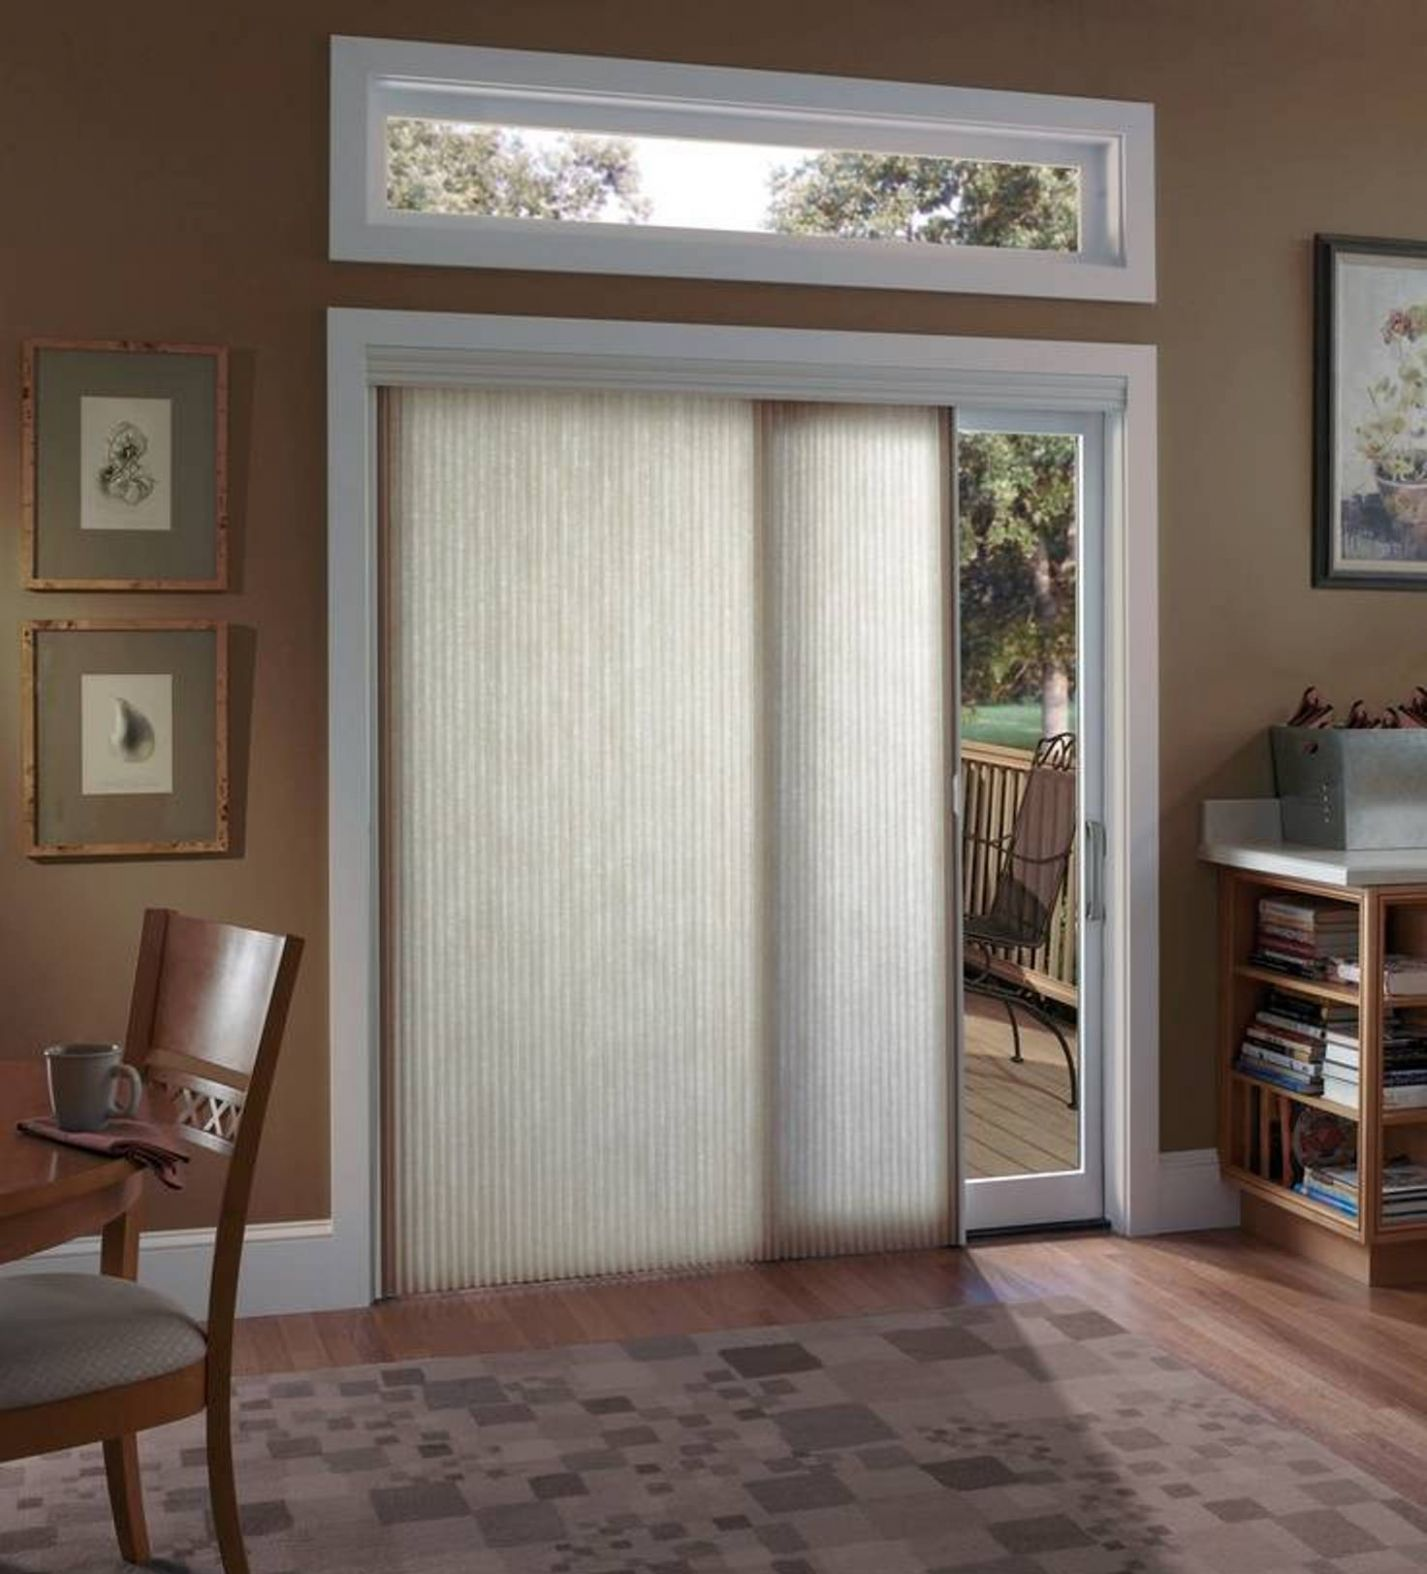 Patio Door Coverings Ideas — Givdo Home Ideas - window covering ideas for sliding glass doors